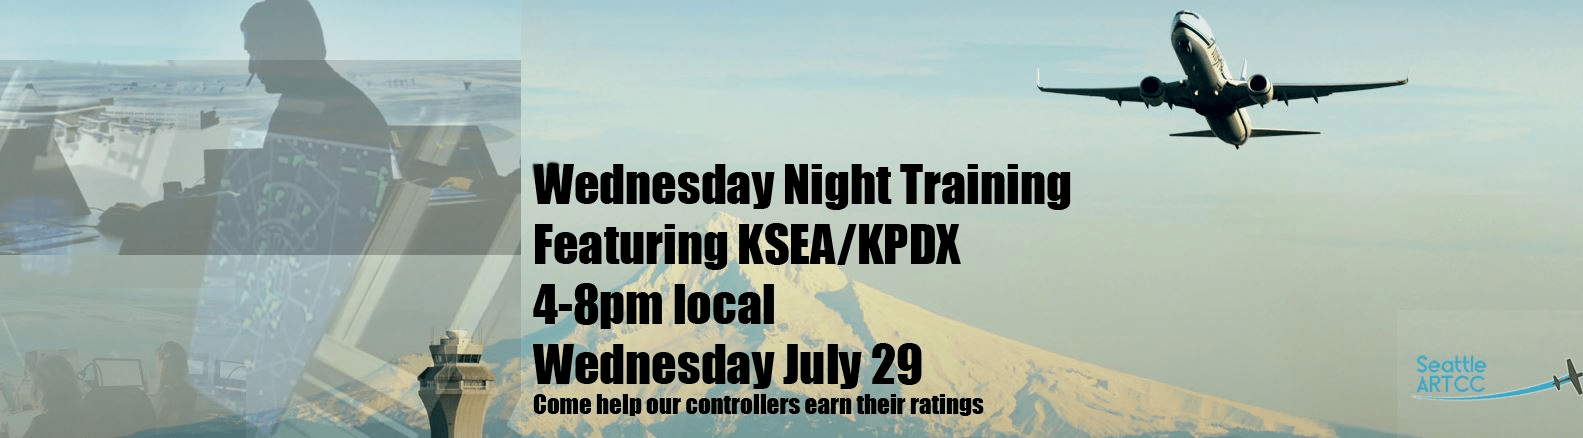 Wednesday Night Training (KSEA/KPDX)